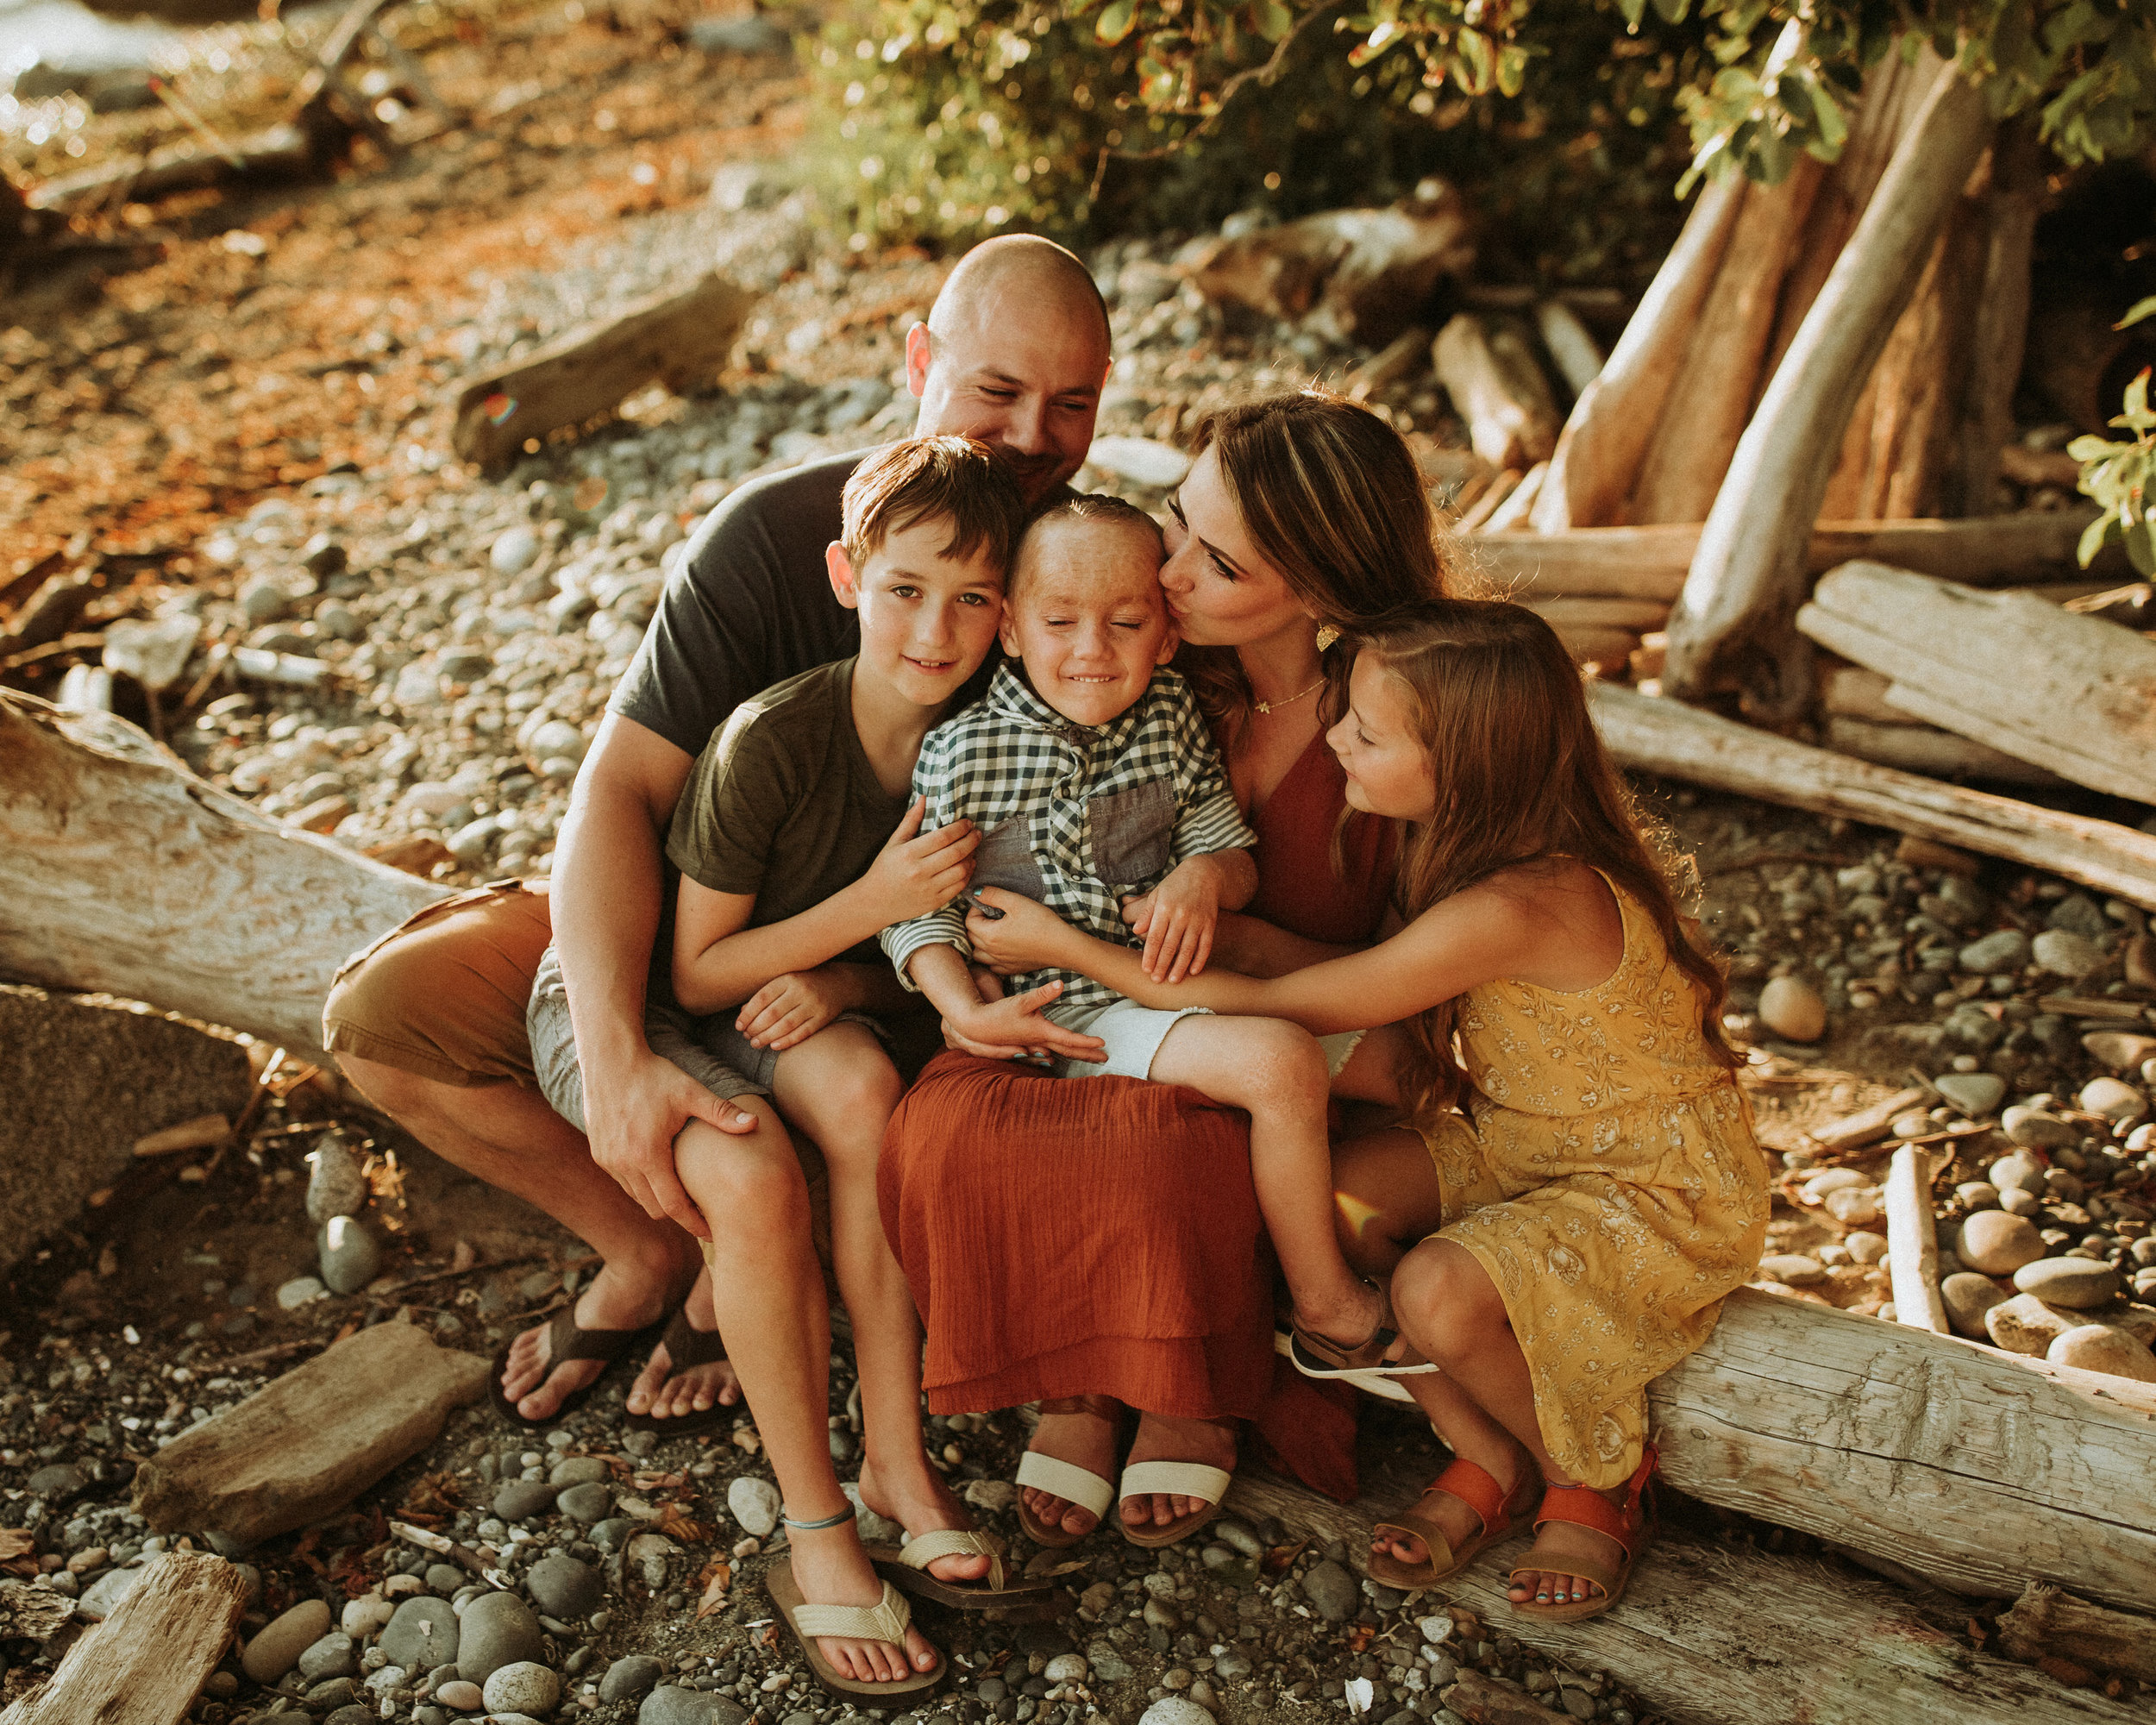 Family-Photographer-Bellingham-WA-Brianne-Bell-Photograpy-(Berry)-2.jpg